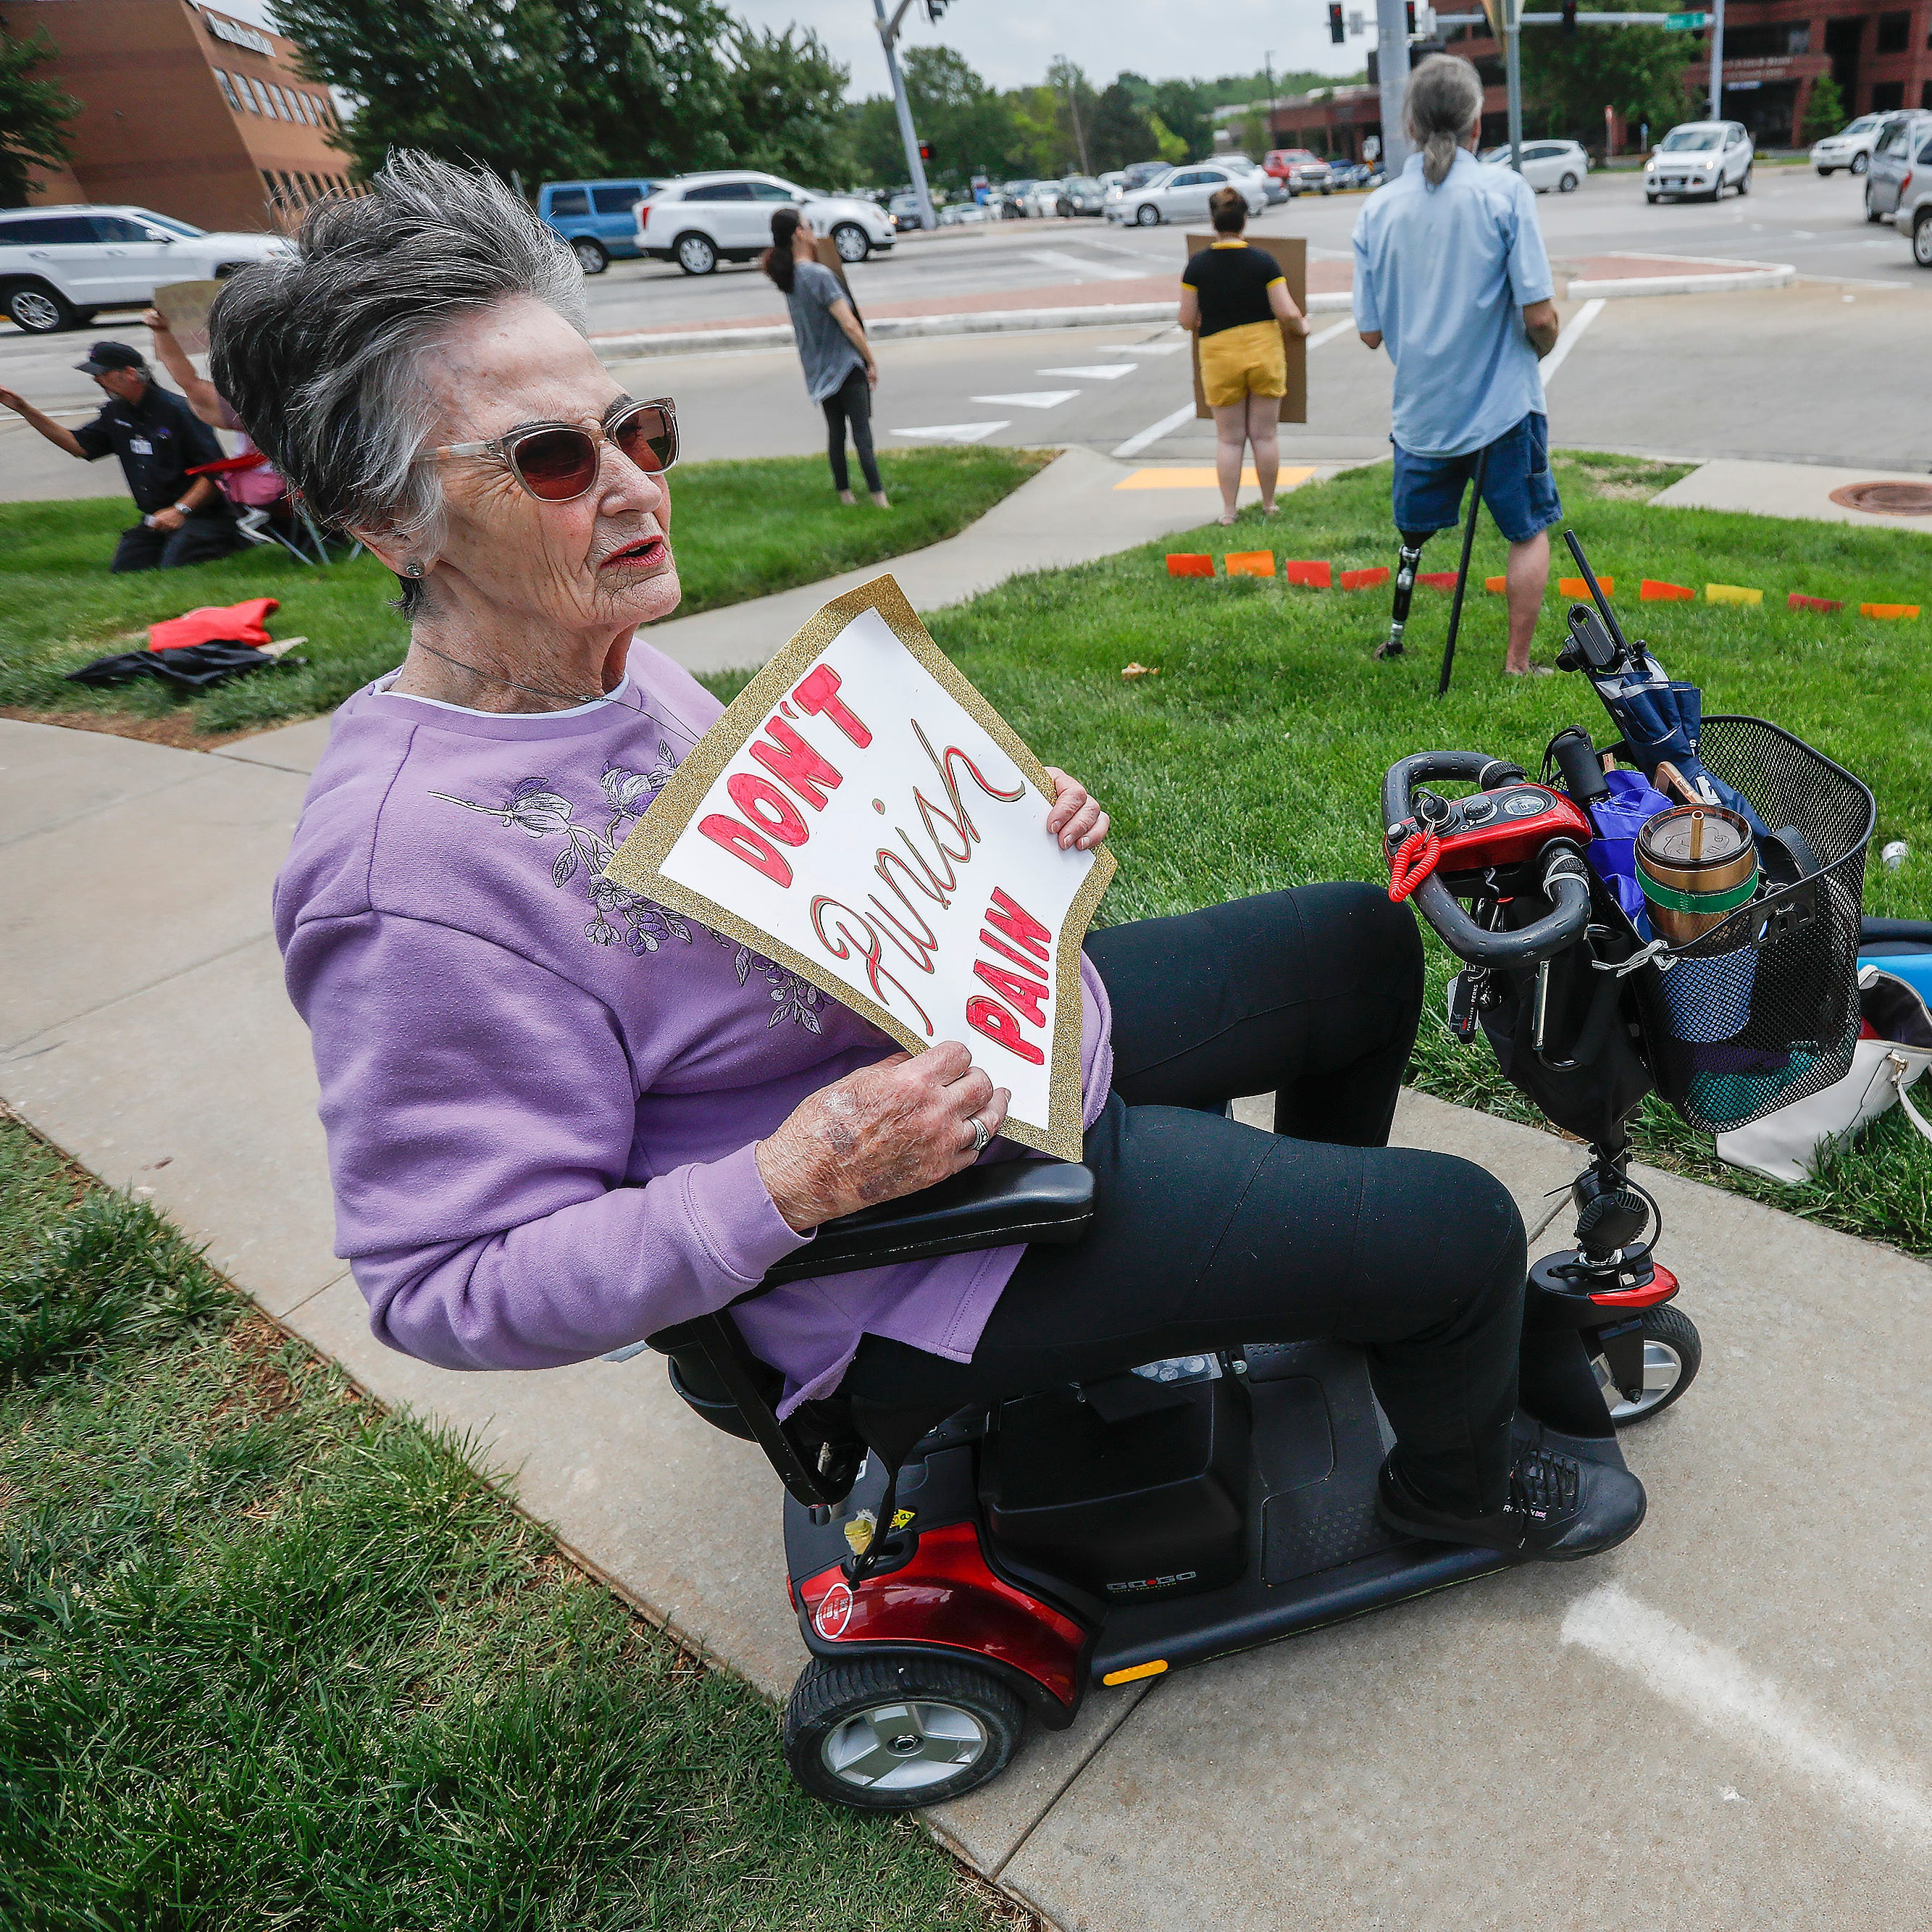 Tired of being treated 'like criminals,' chronic pain patients rally in Springfield